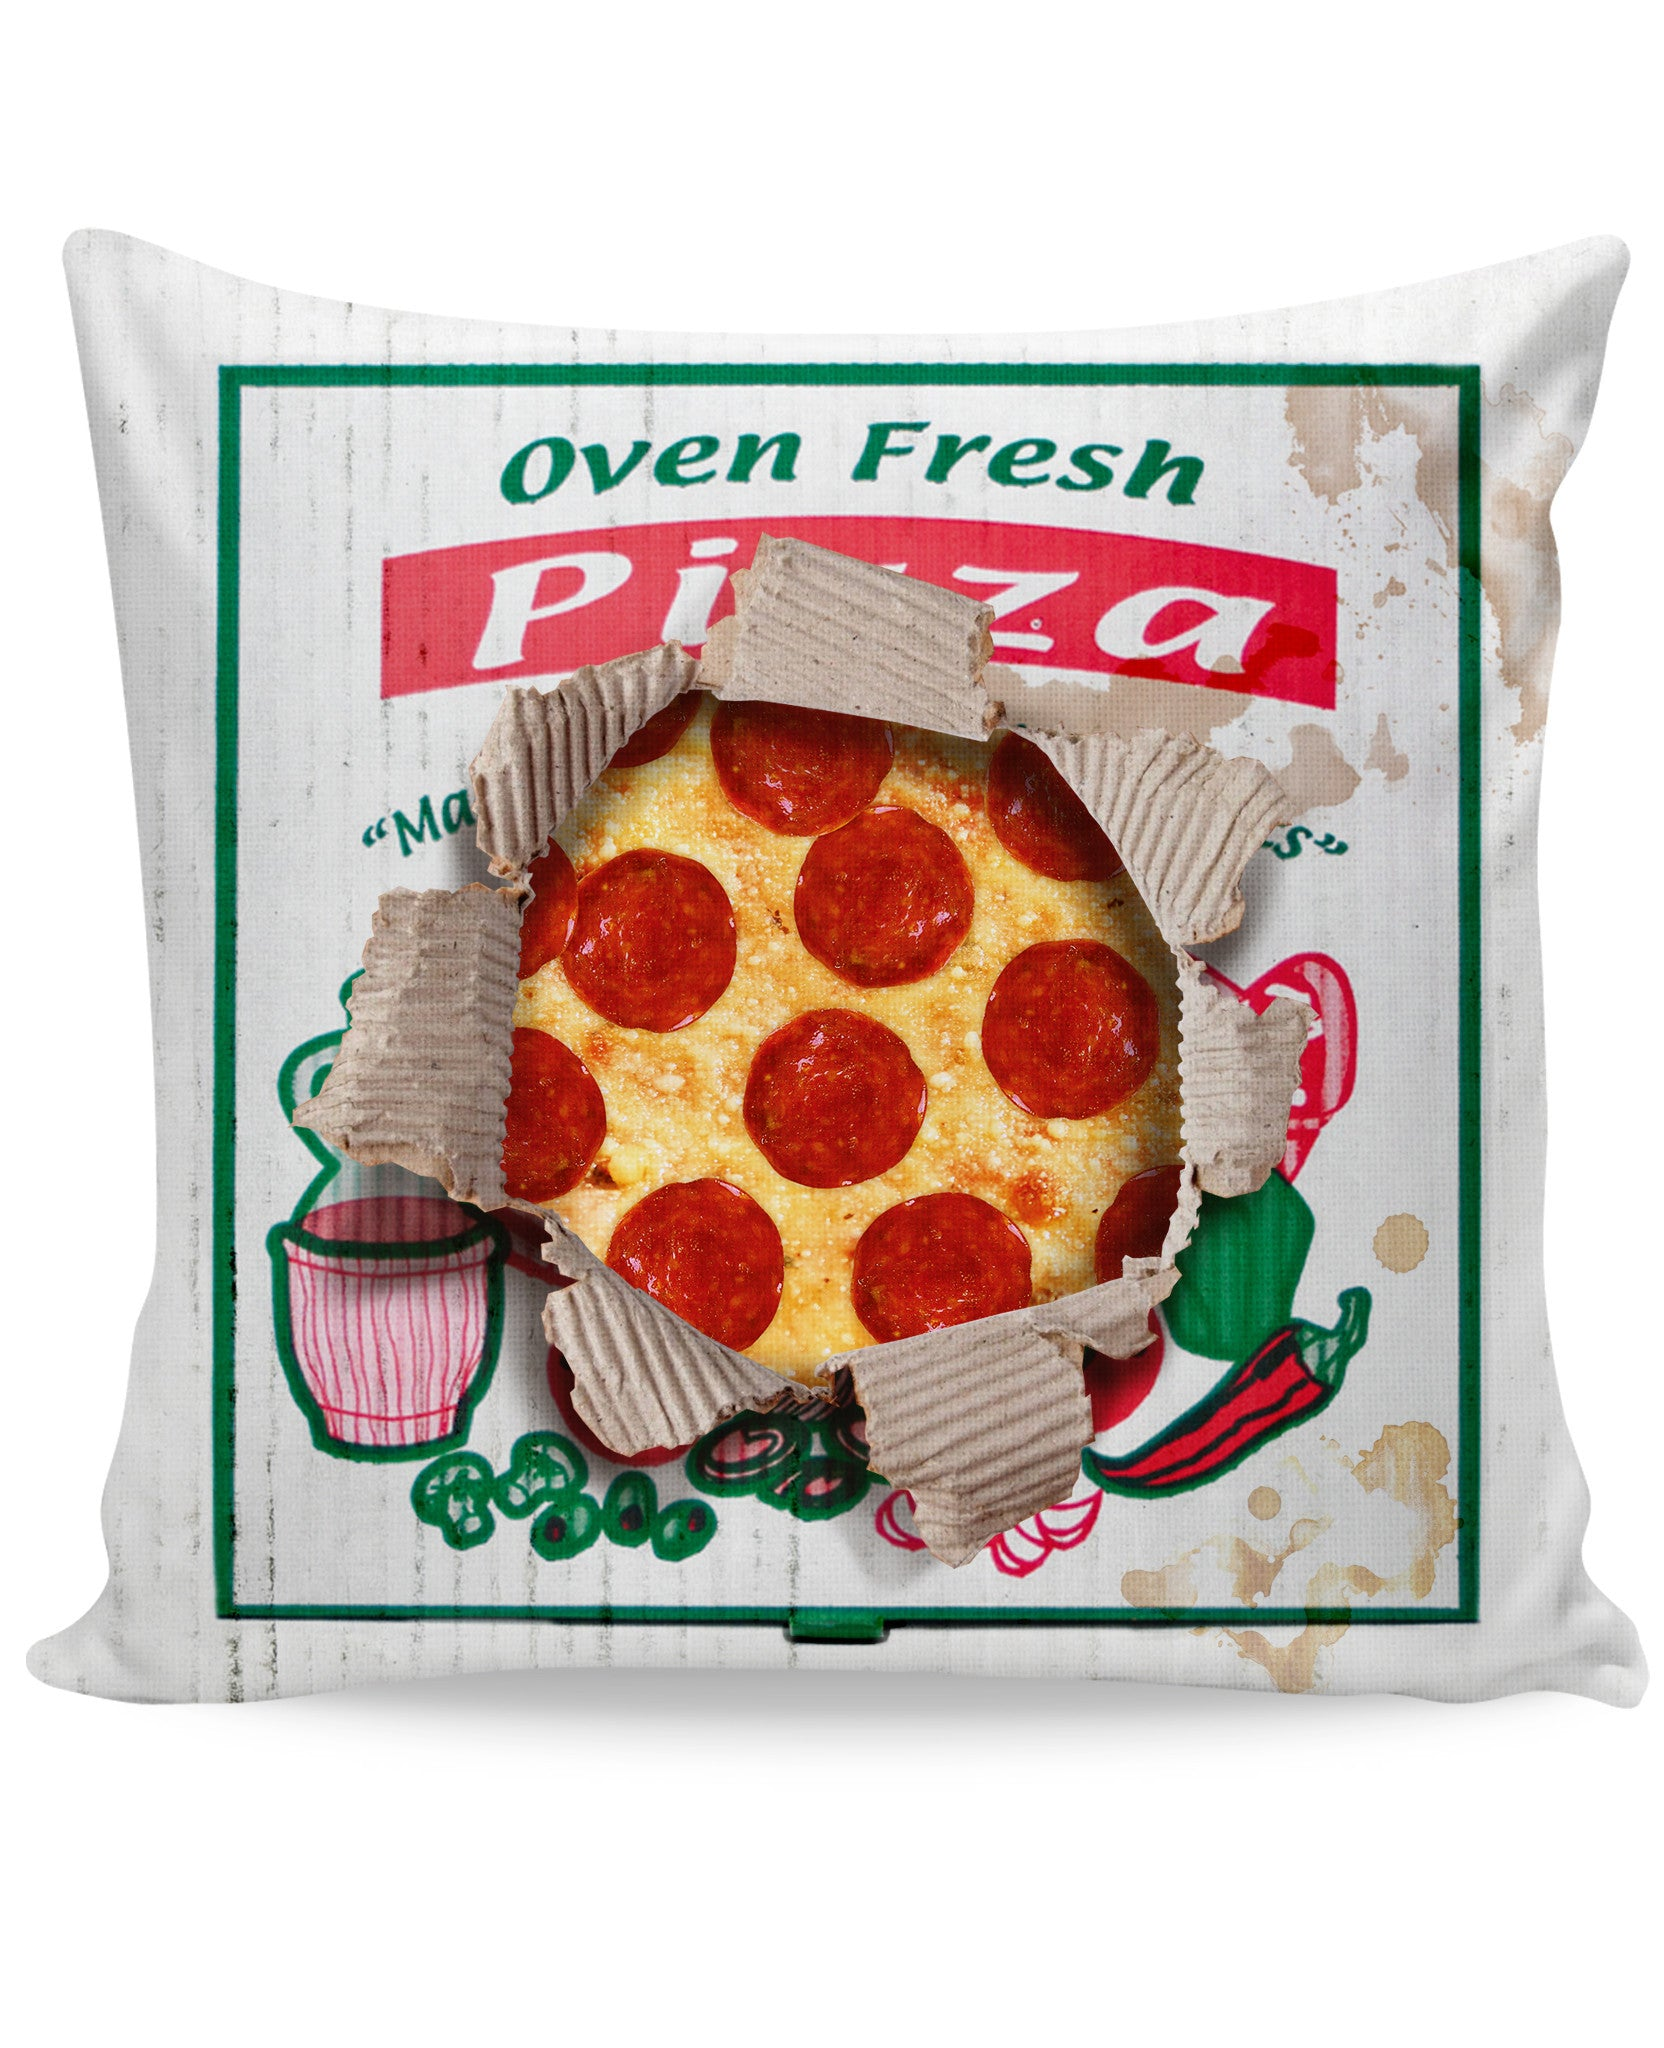 Leftover Pizza Box Couch Pillow